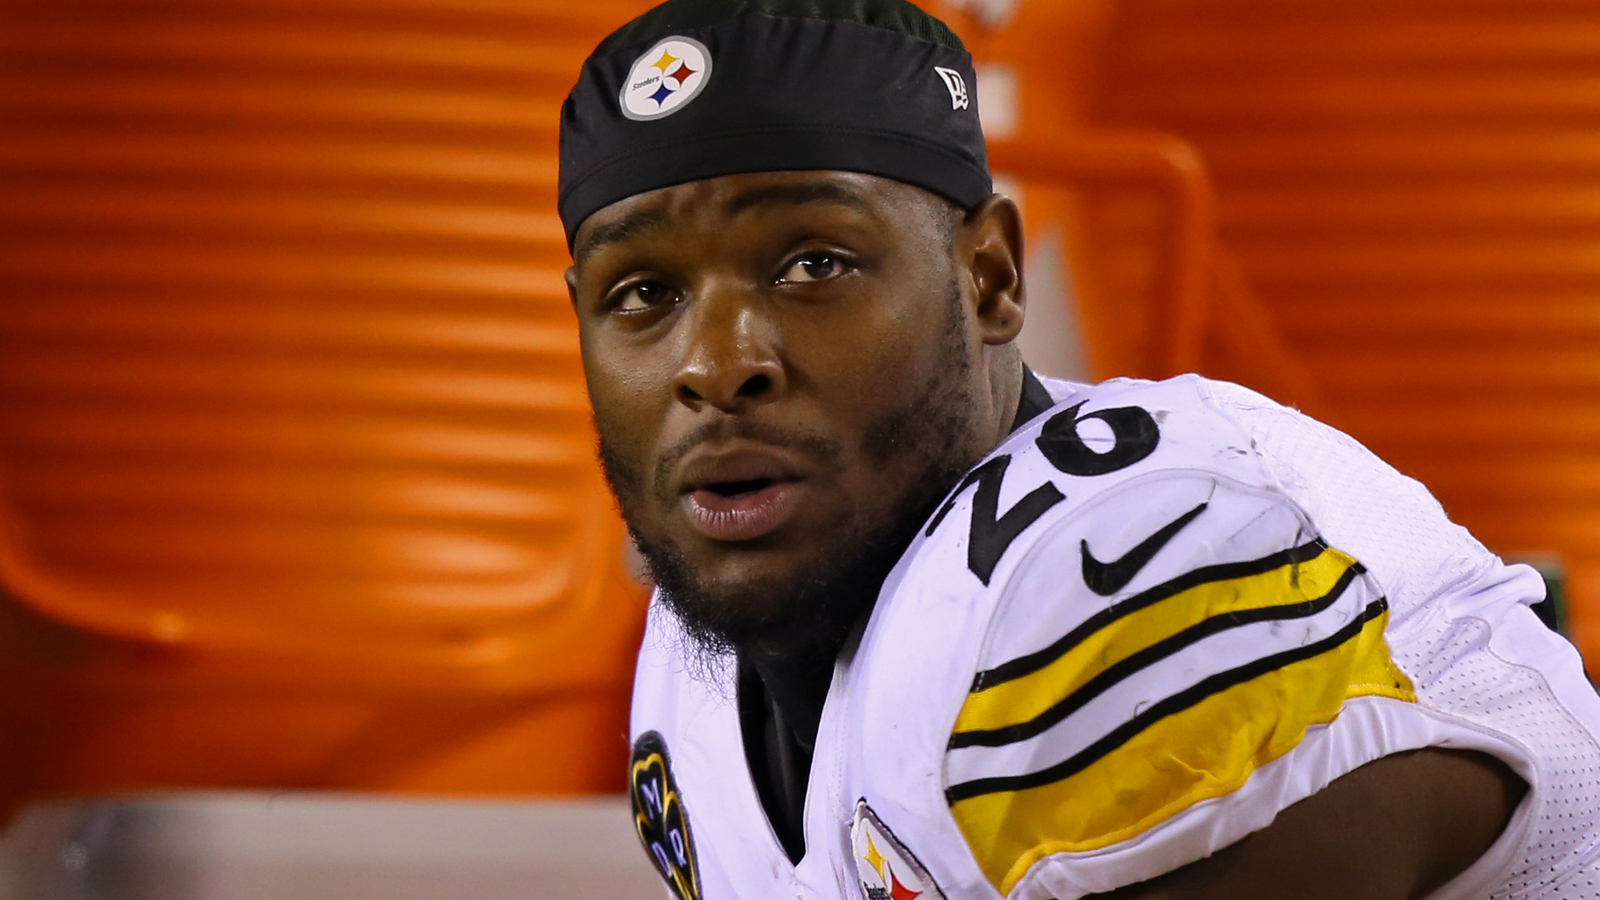 Steelers Set Deadline For Reaching Deal With Le'Veon Bell